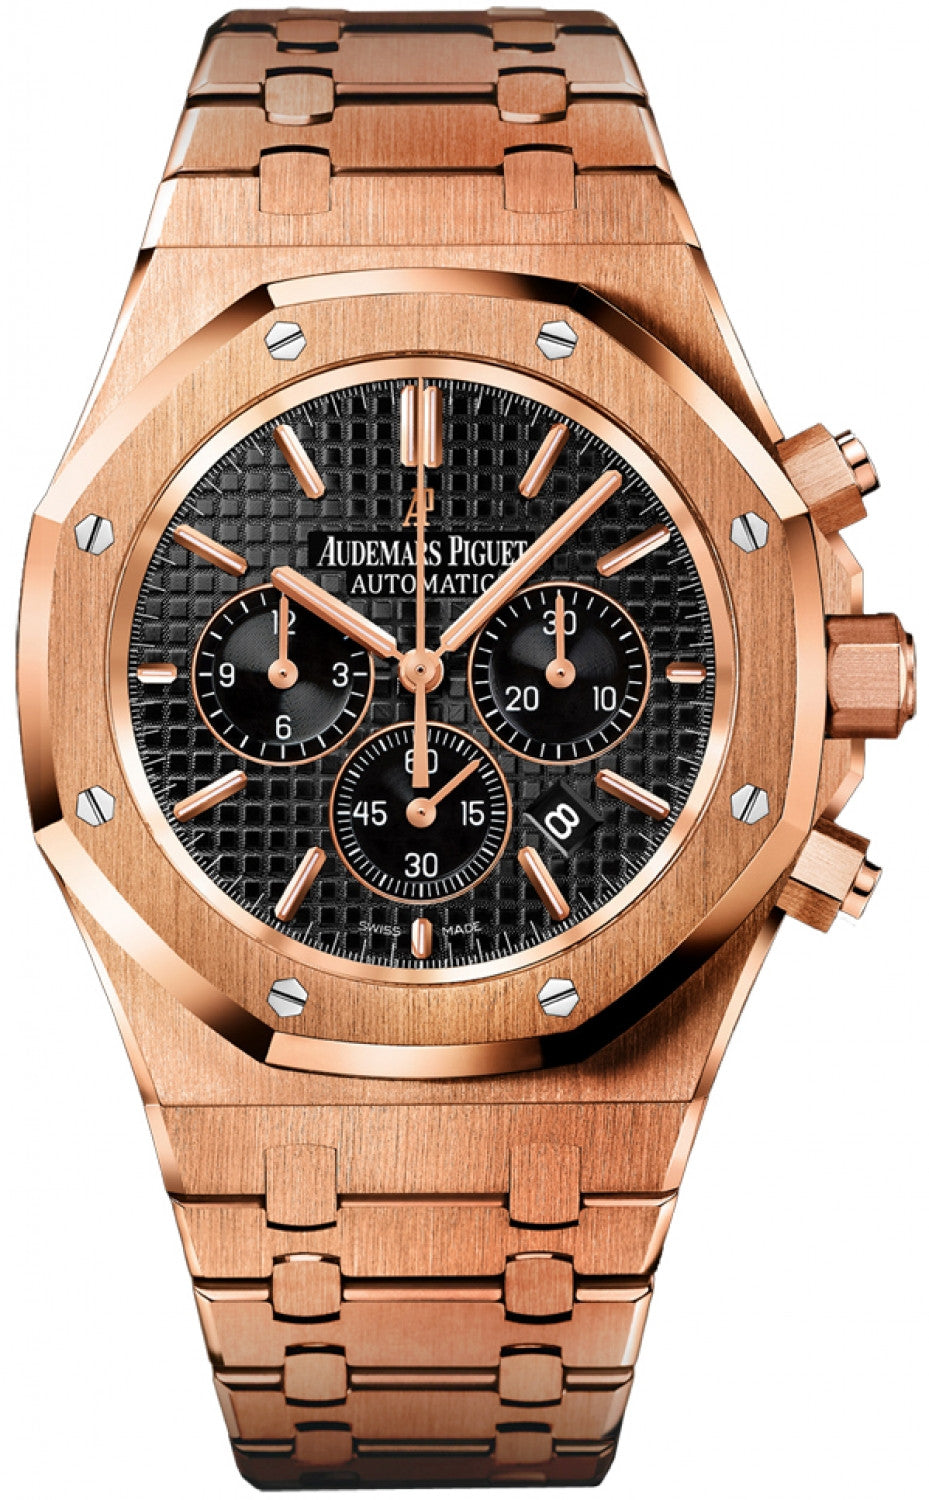 Audemars Piguet 26320or.oo.1220or.01